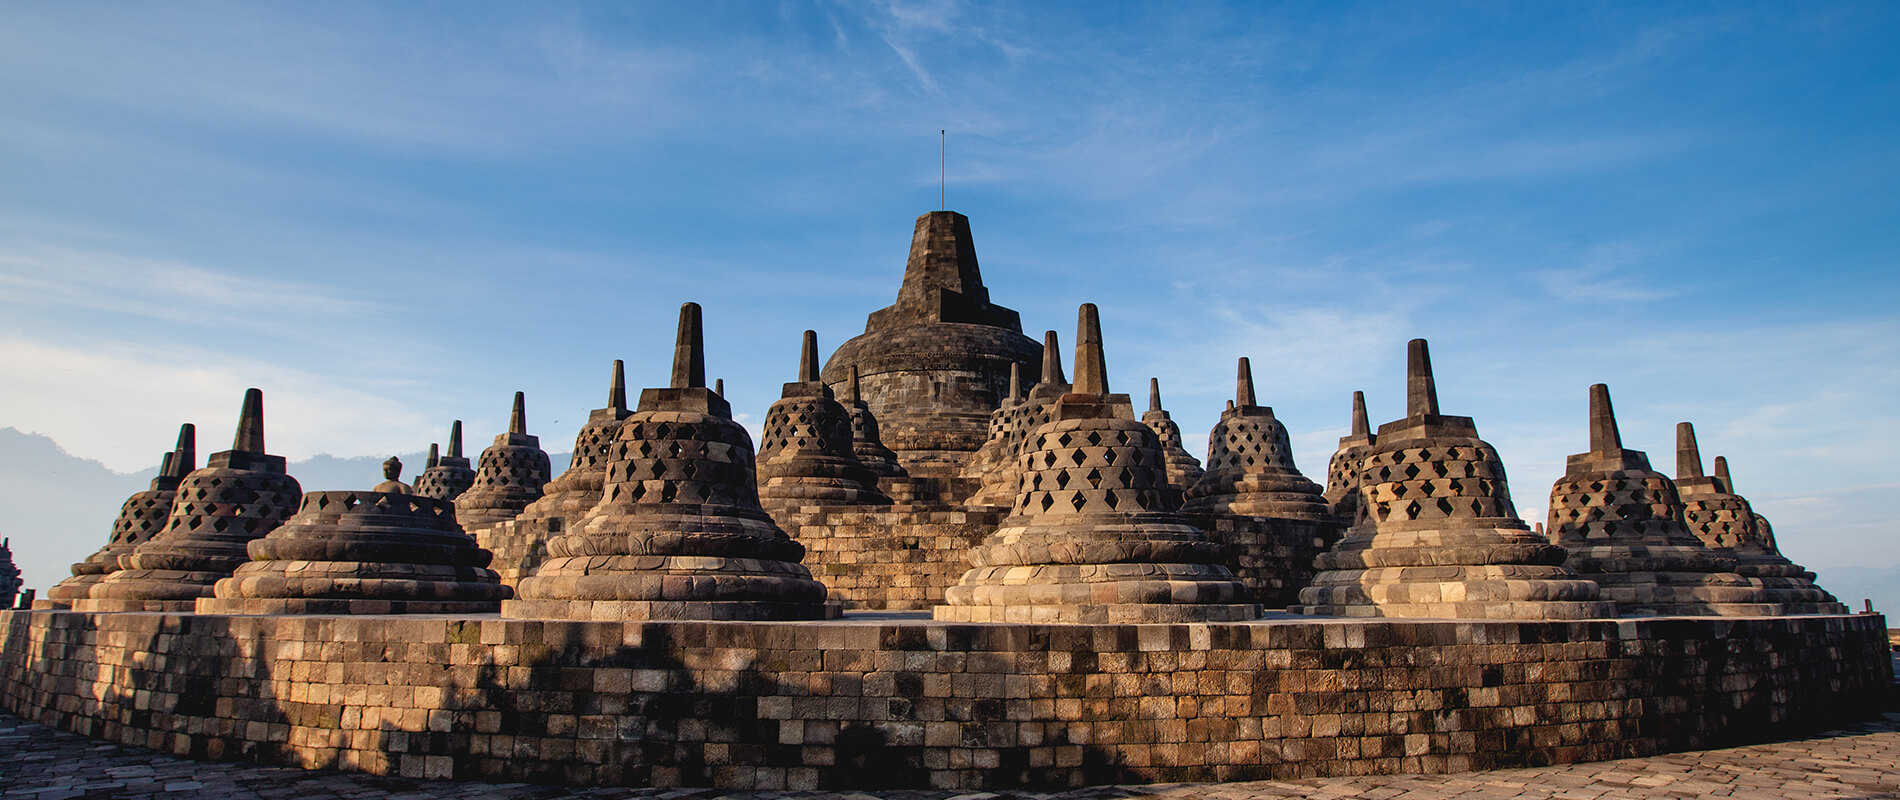 The Temple of Borobudur, a majestic Buddhist Monument on the Island of Java